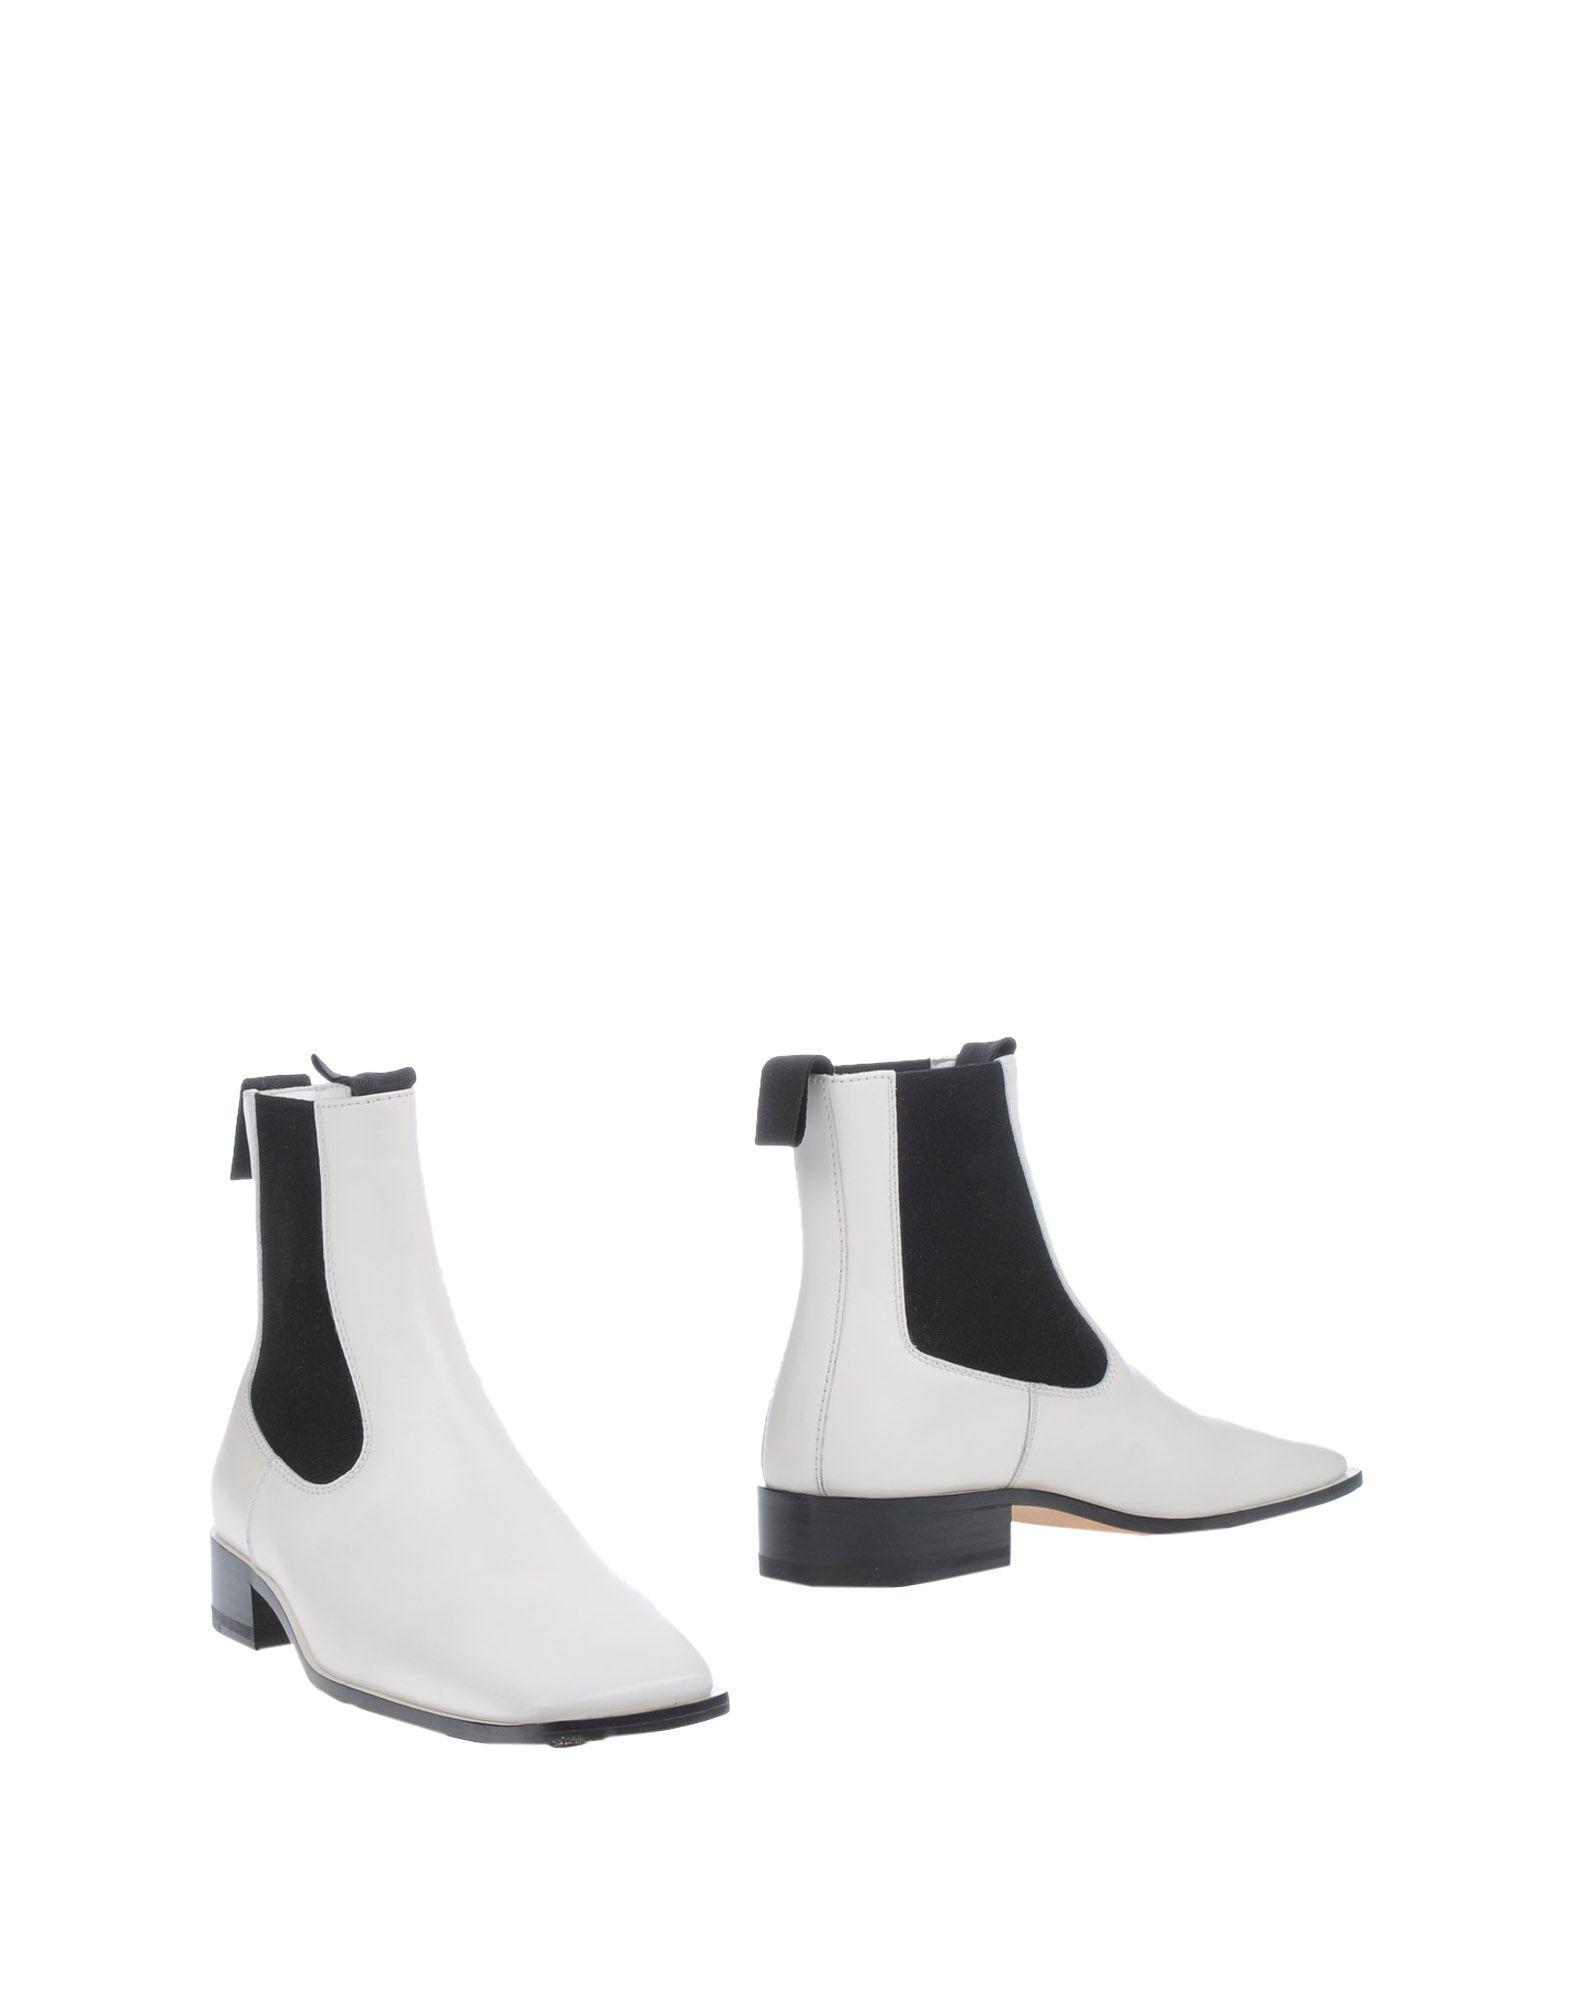 Celine Leather Ankle Boots in White - Lyst